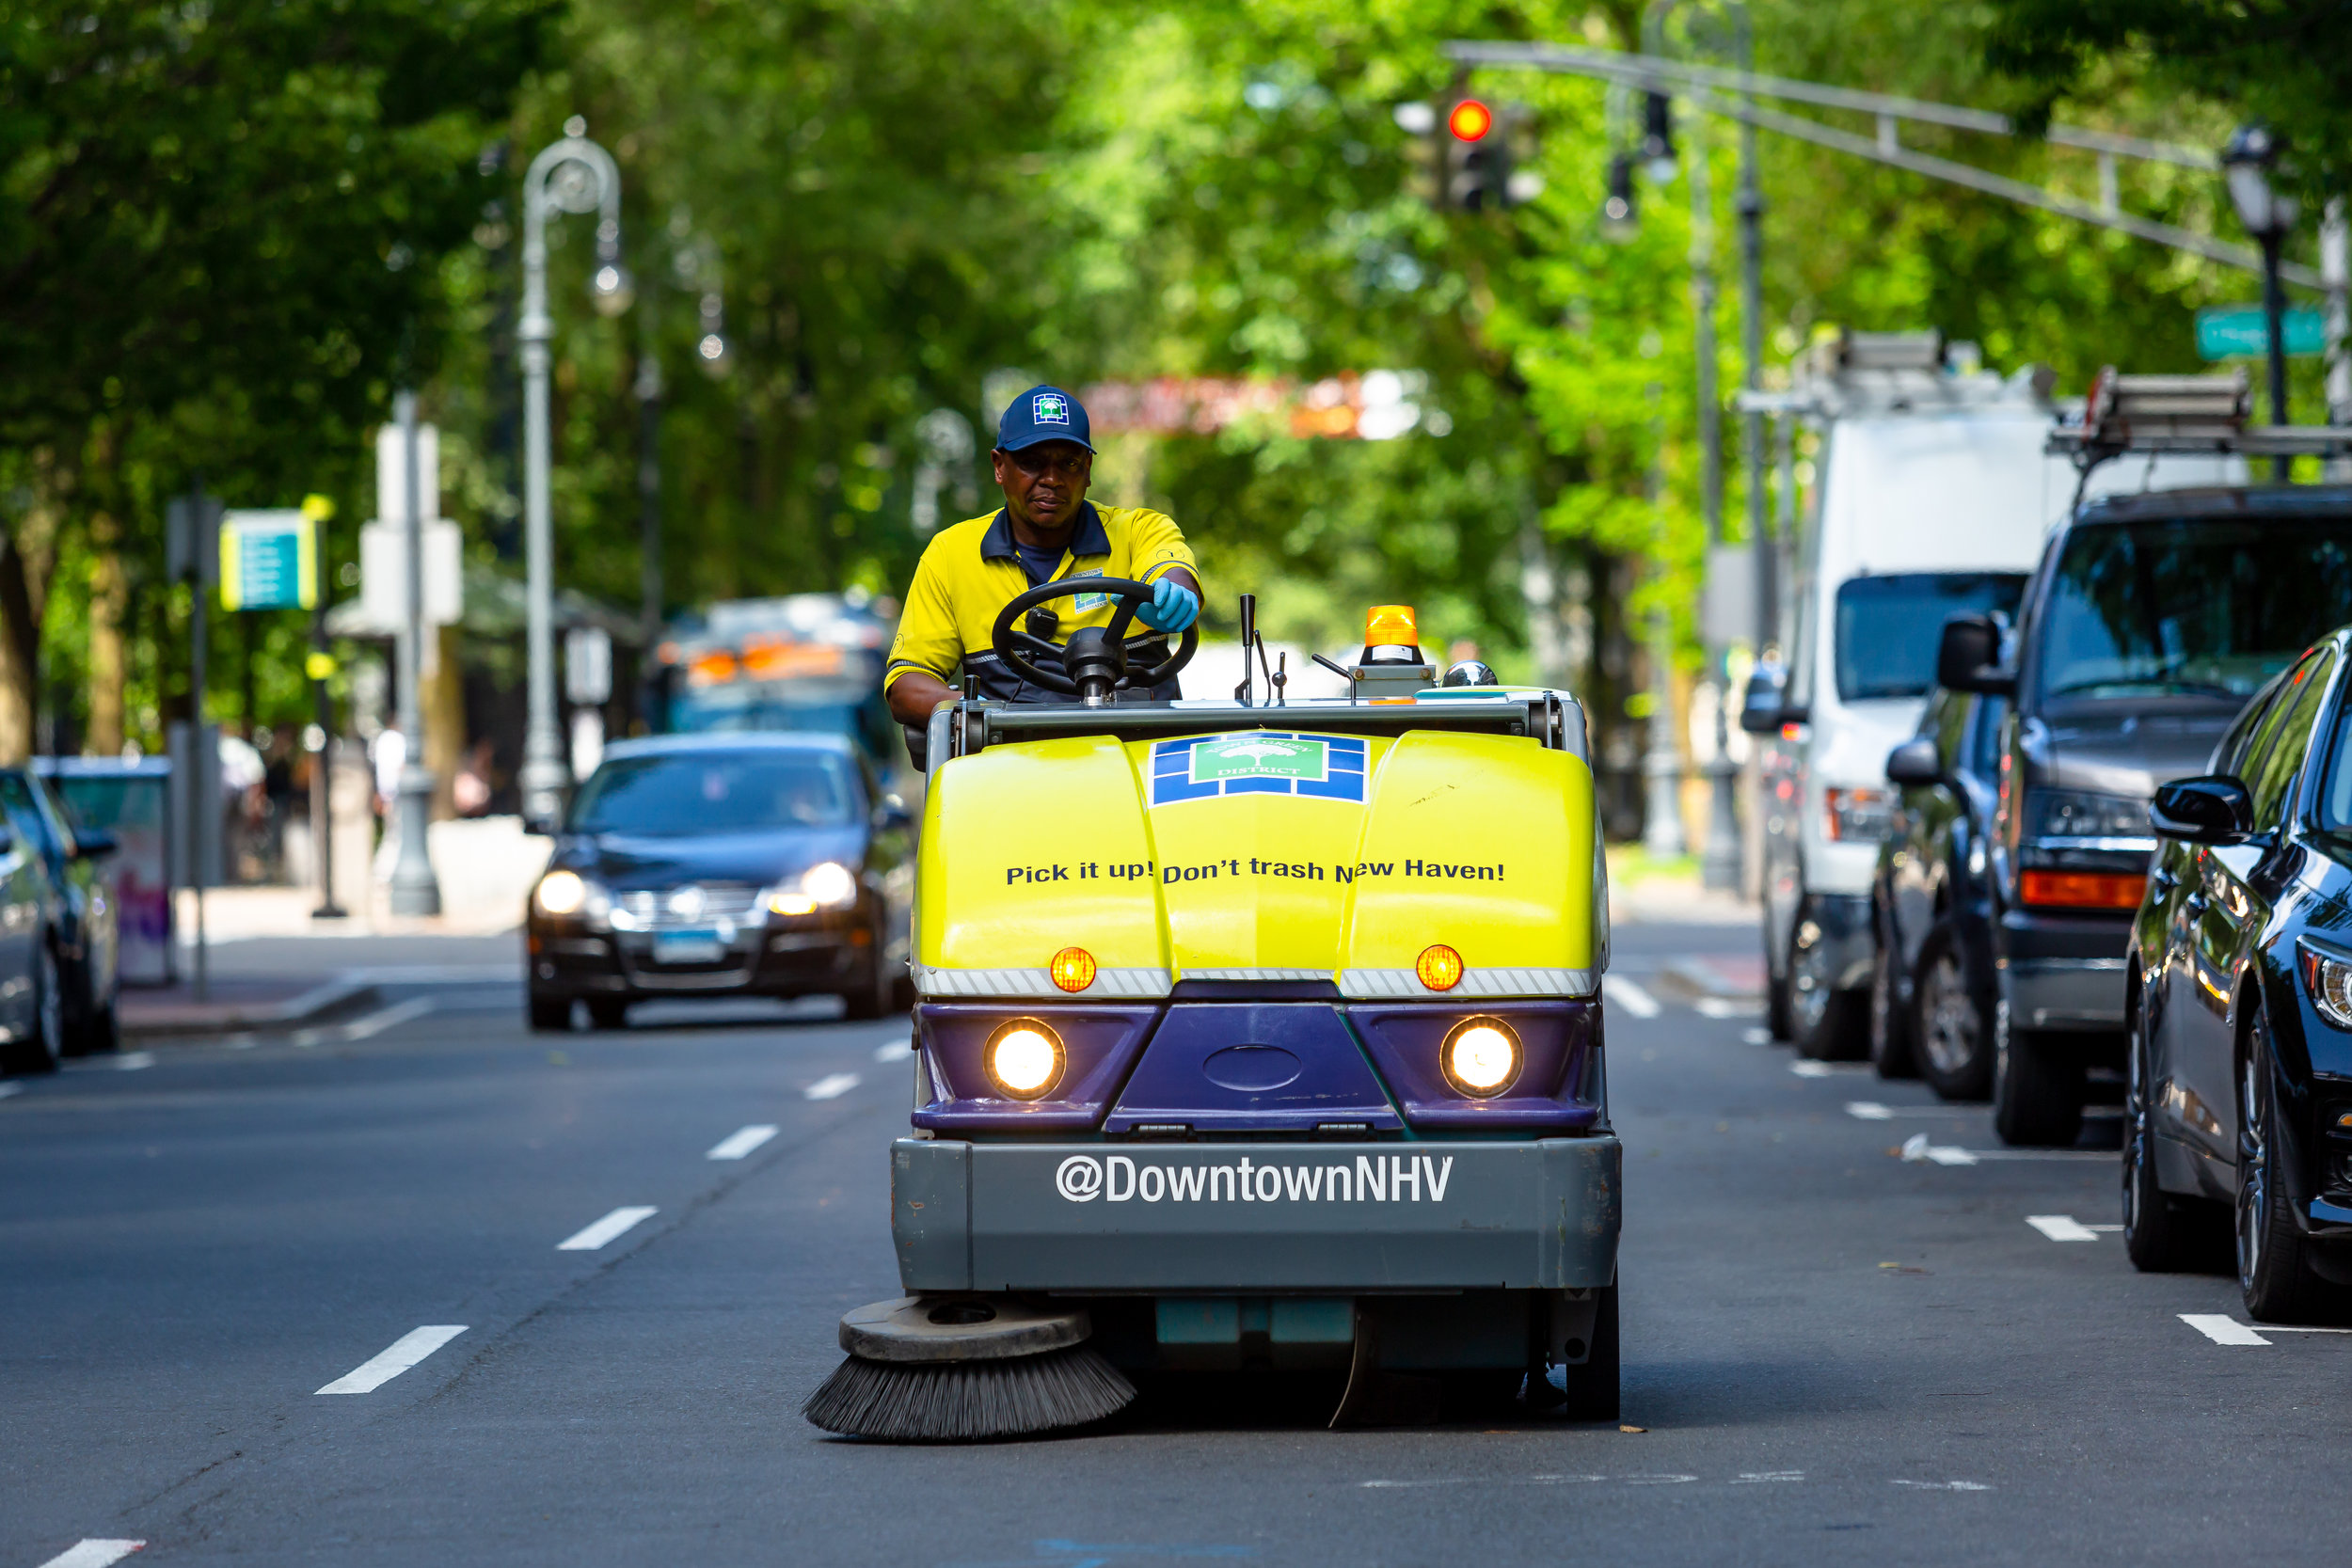 Donated to Town Green by The City of New Haven's  Economic Development Department , the TenantS20 mini streetsweeper allows Ambassadors to spend evenings sweeping city streets.